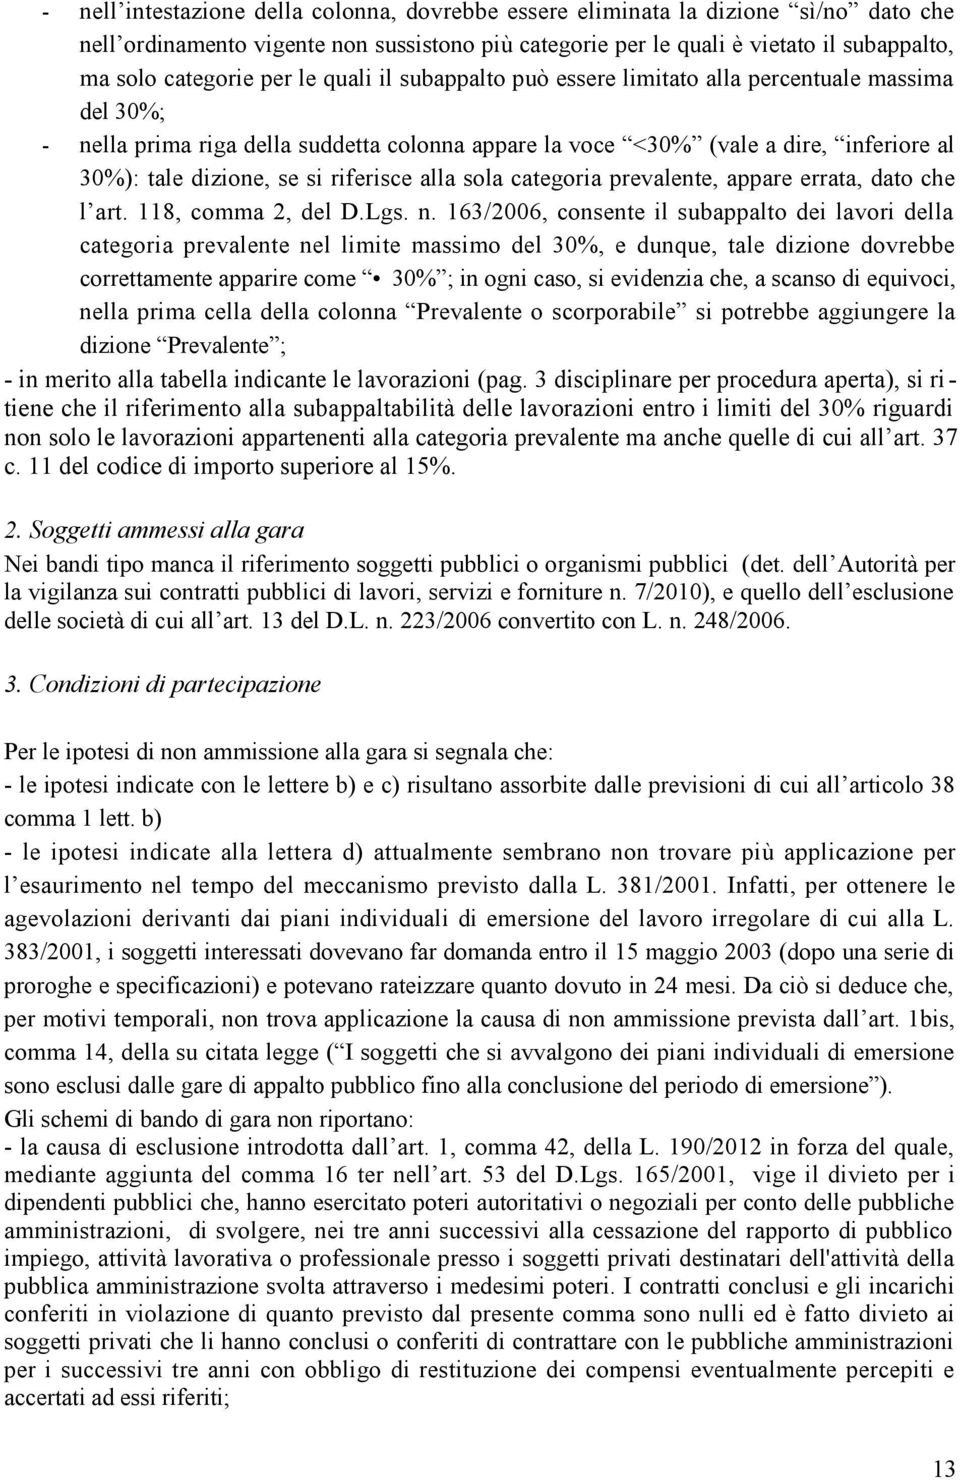 riferisce alla sola categoria prevalente, appare errata, dato che l art. 118, comma 2, del D.Lgs. n.